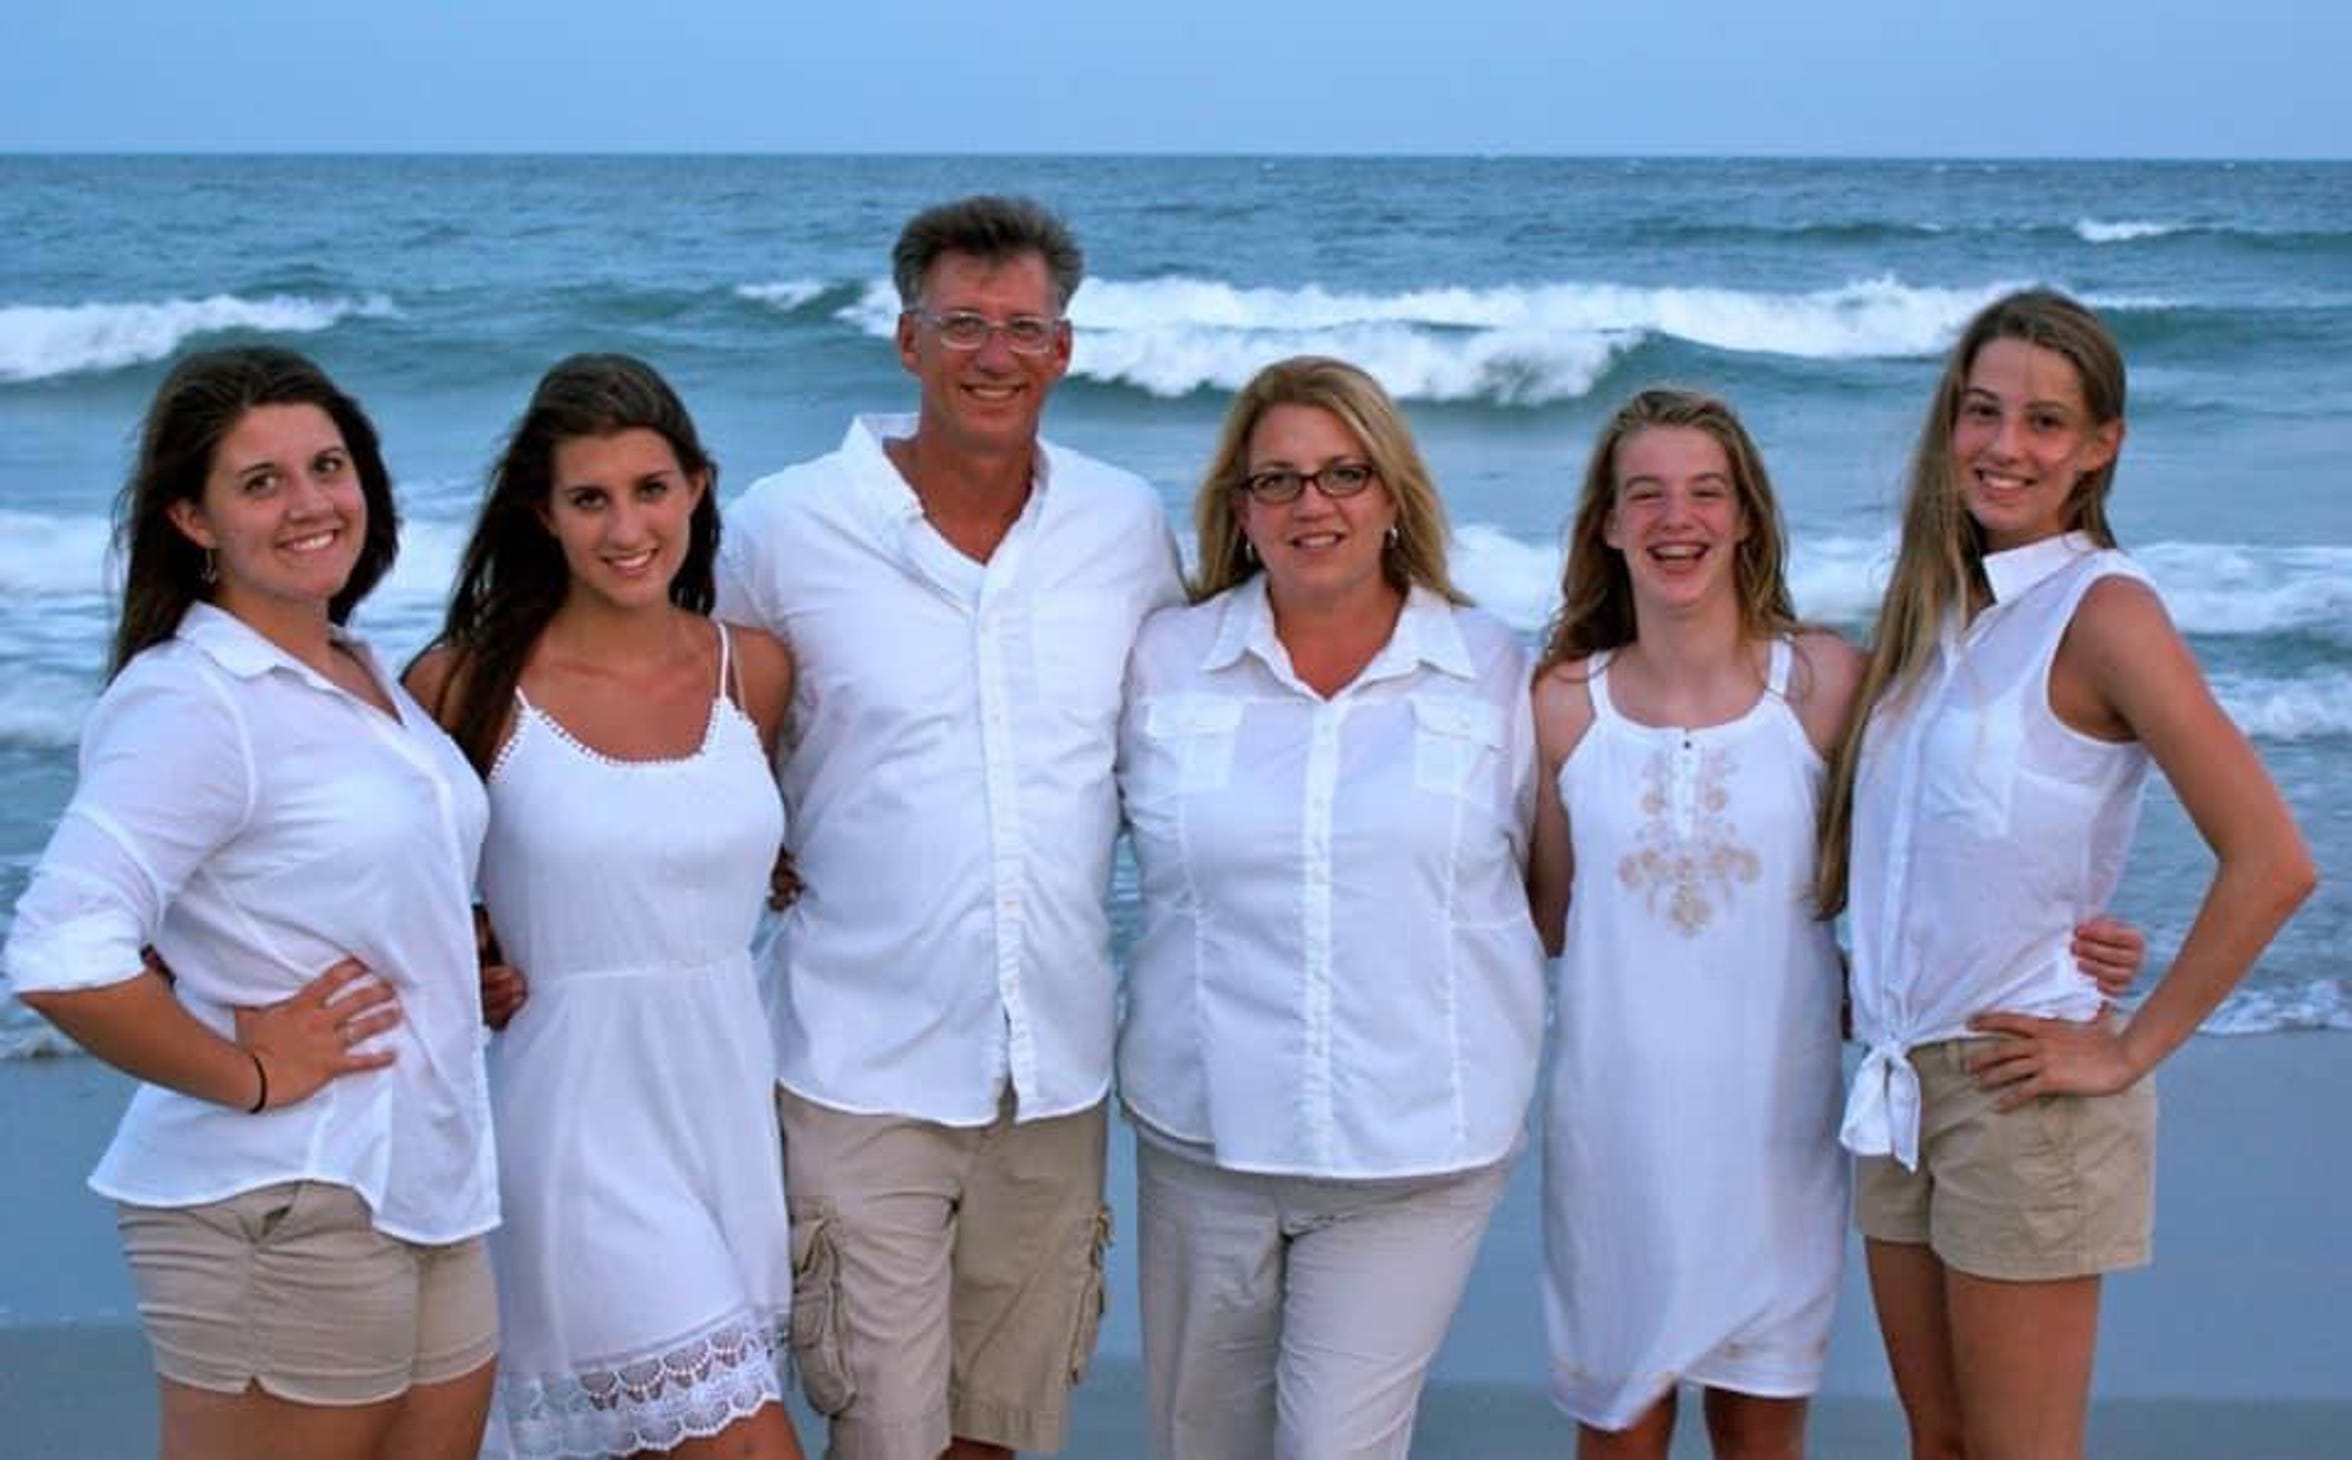 The Pepperman family poses on the beach during a vacation to Florida in 2018. Fred Pepperman, 53, died on July 14, after swimming out to rescue his daughters from a riptide at the Miramar Beach area.